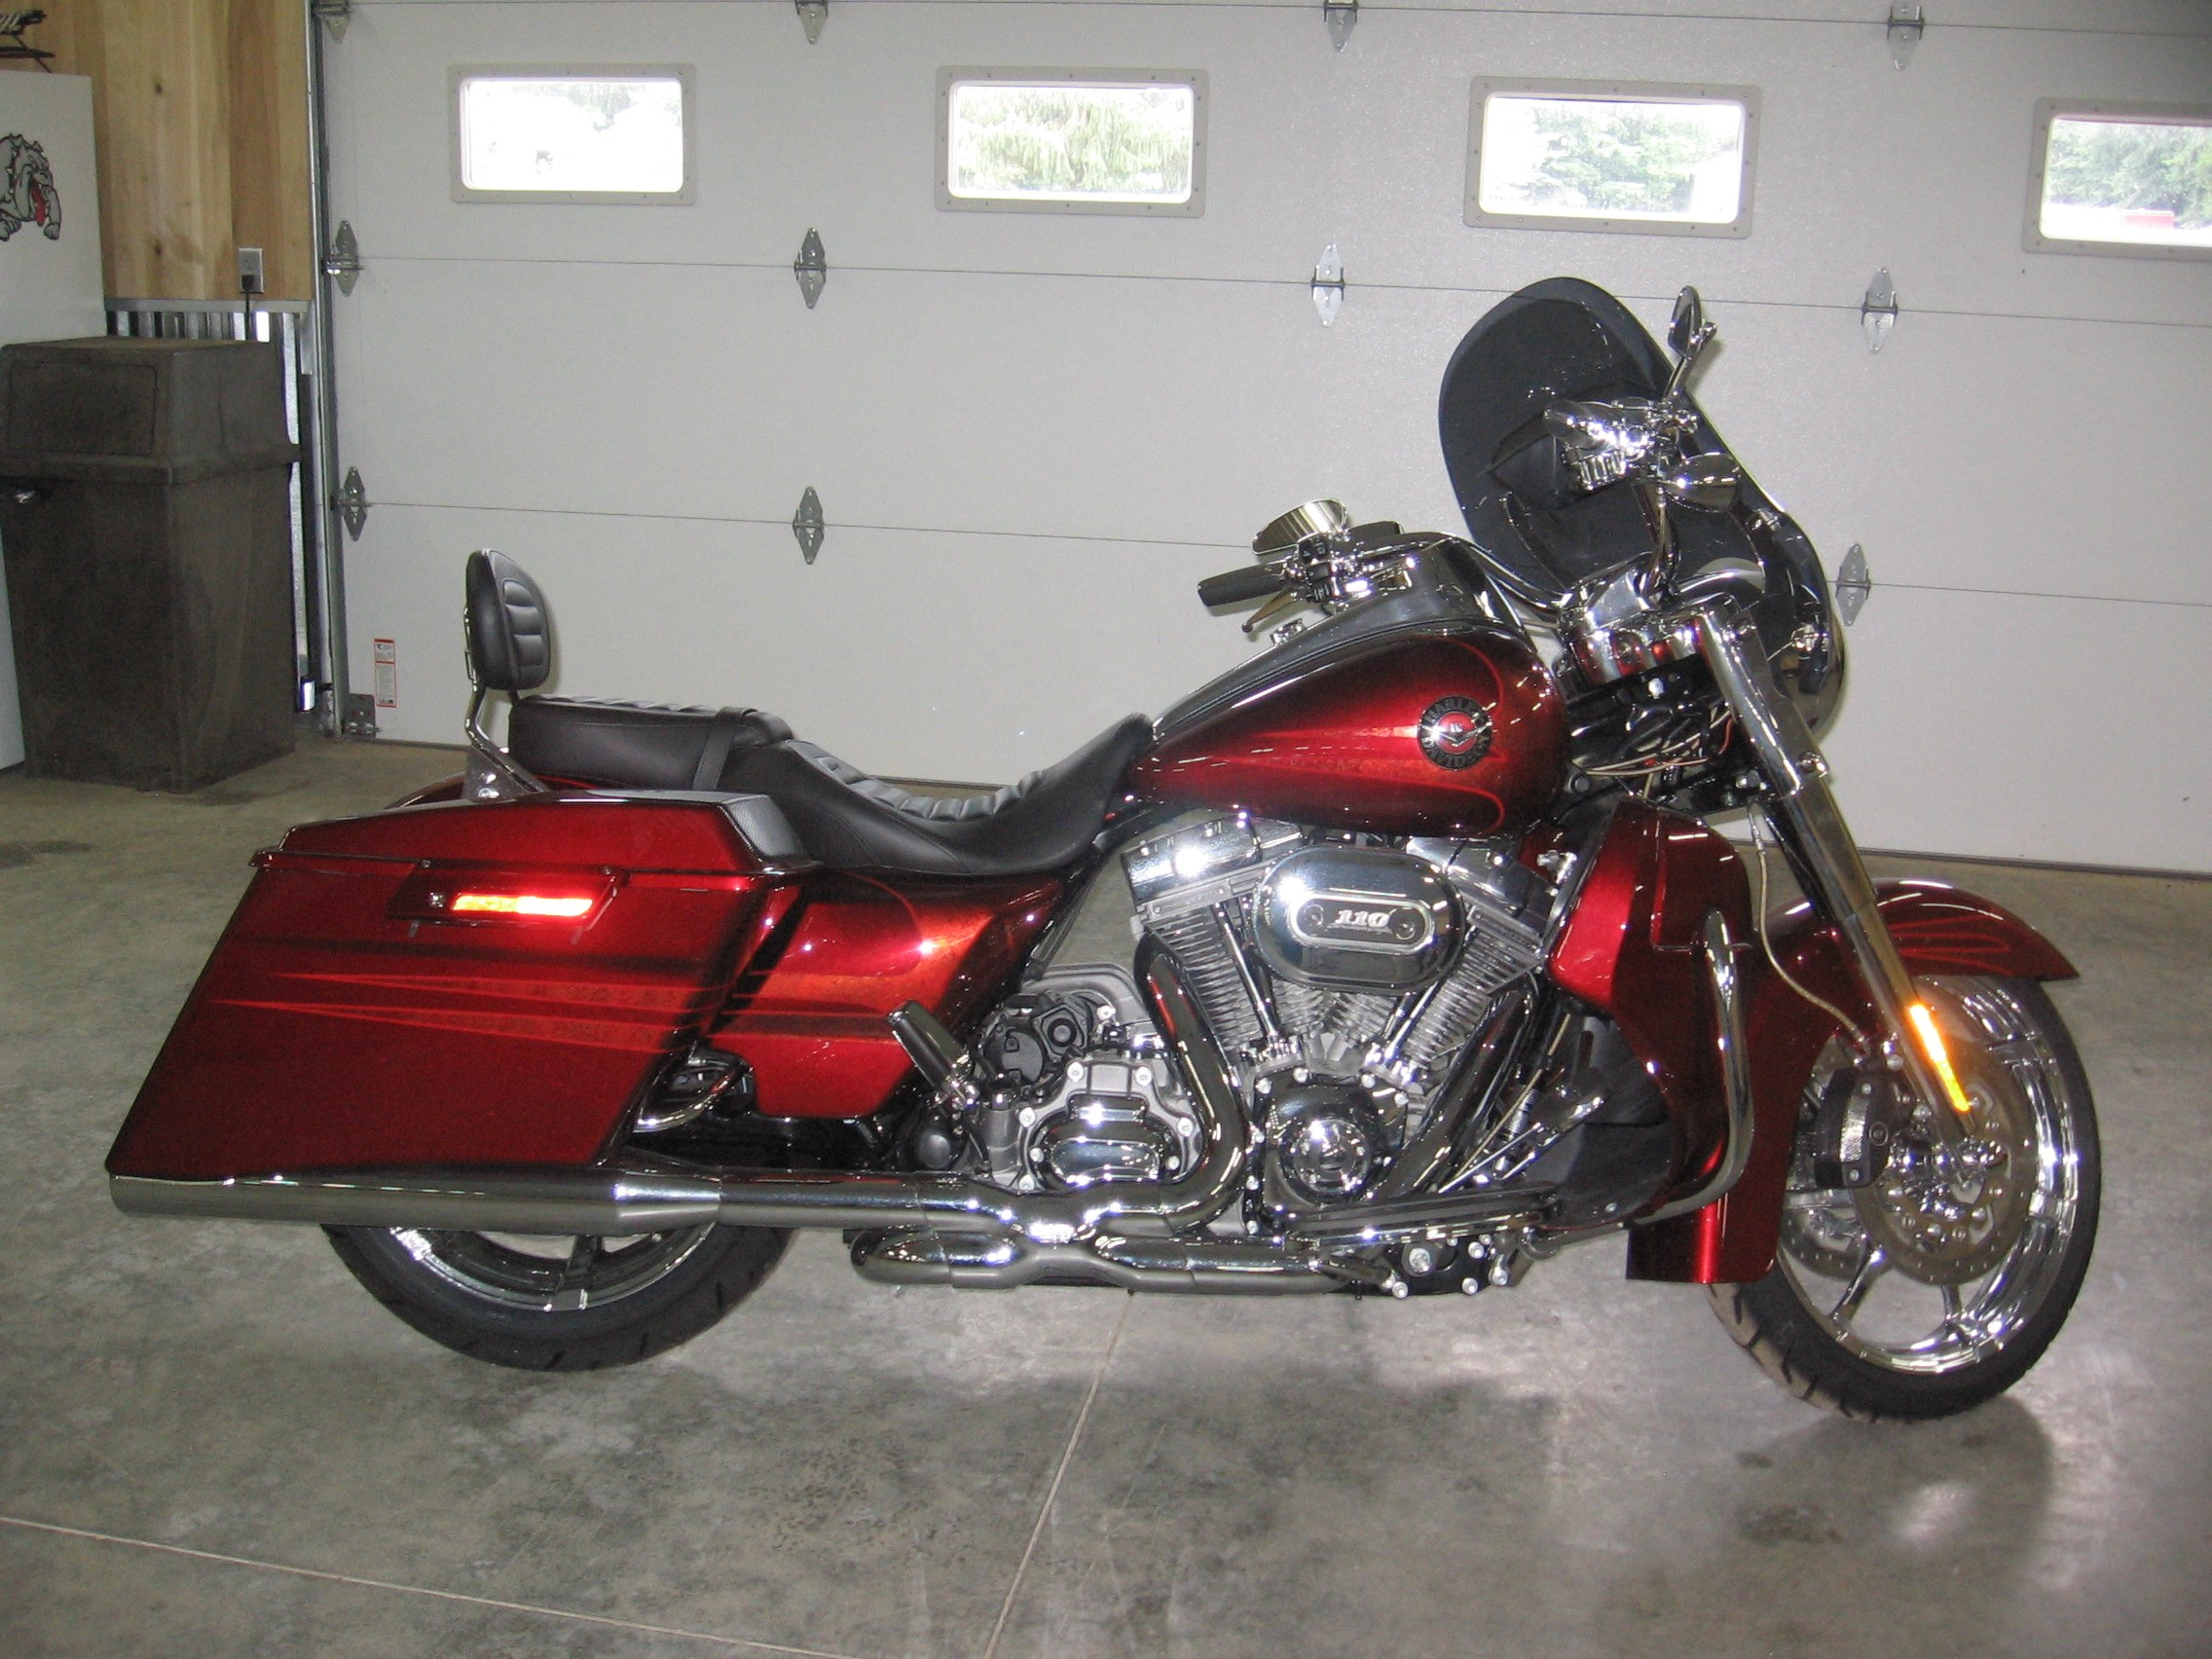 harley davidson cvo road king for sale 22 bikes page 1. Black Bedroom Furniture Sets. Home Design Ideas